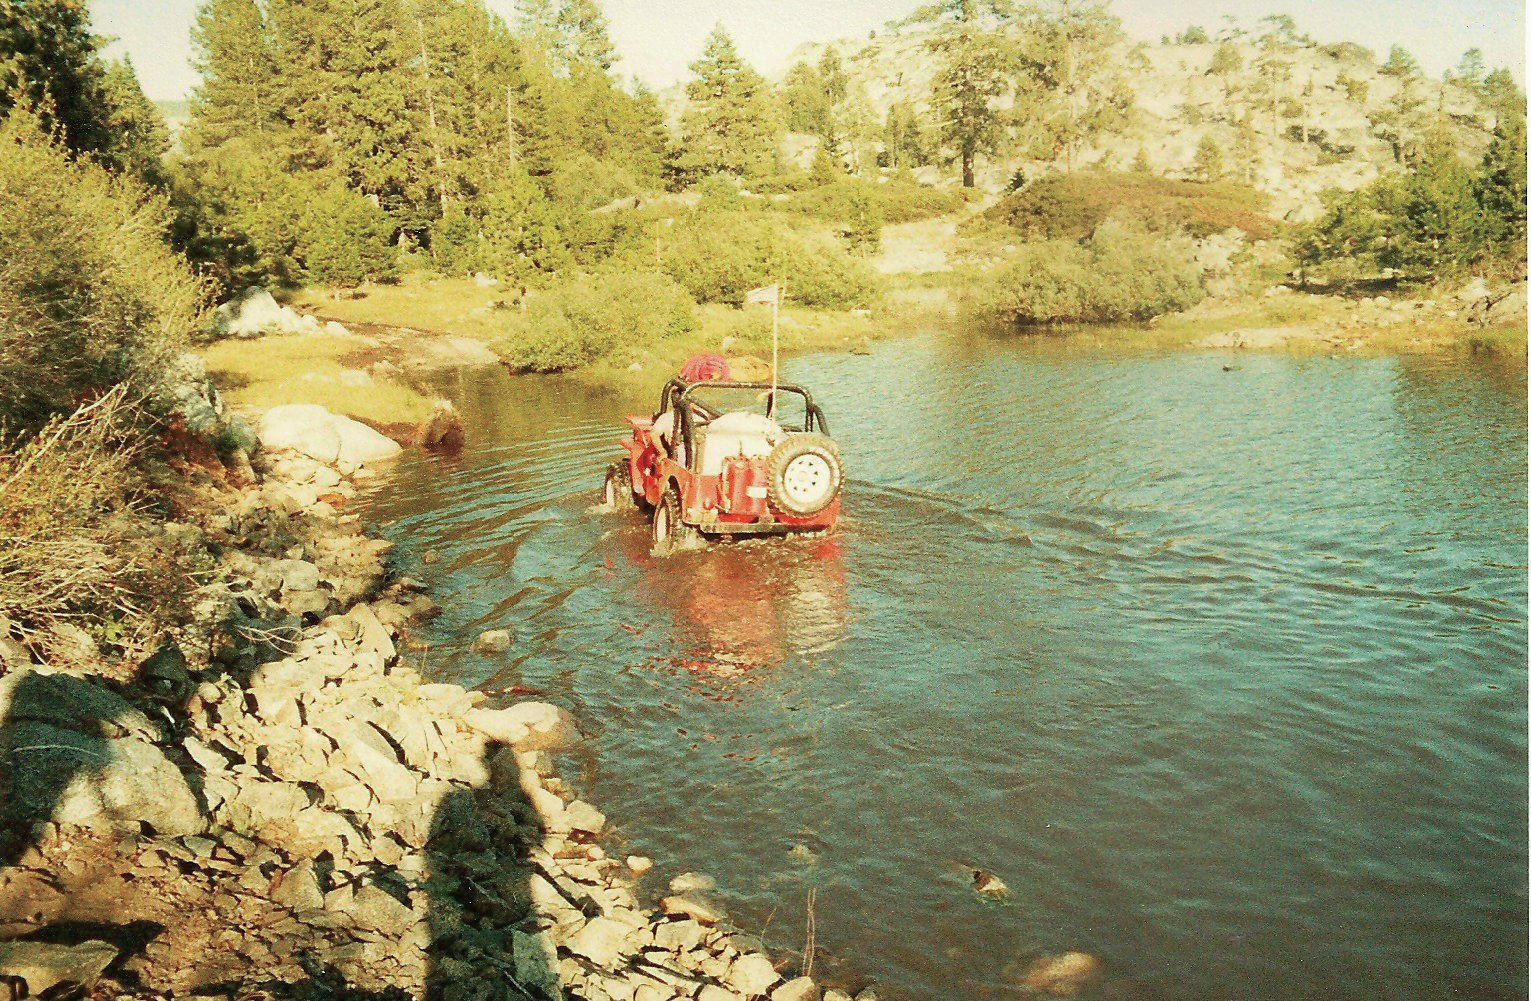 1946 jeep cj 2a crossing water